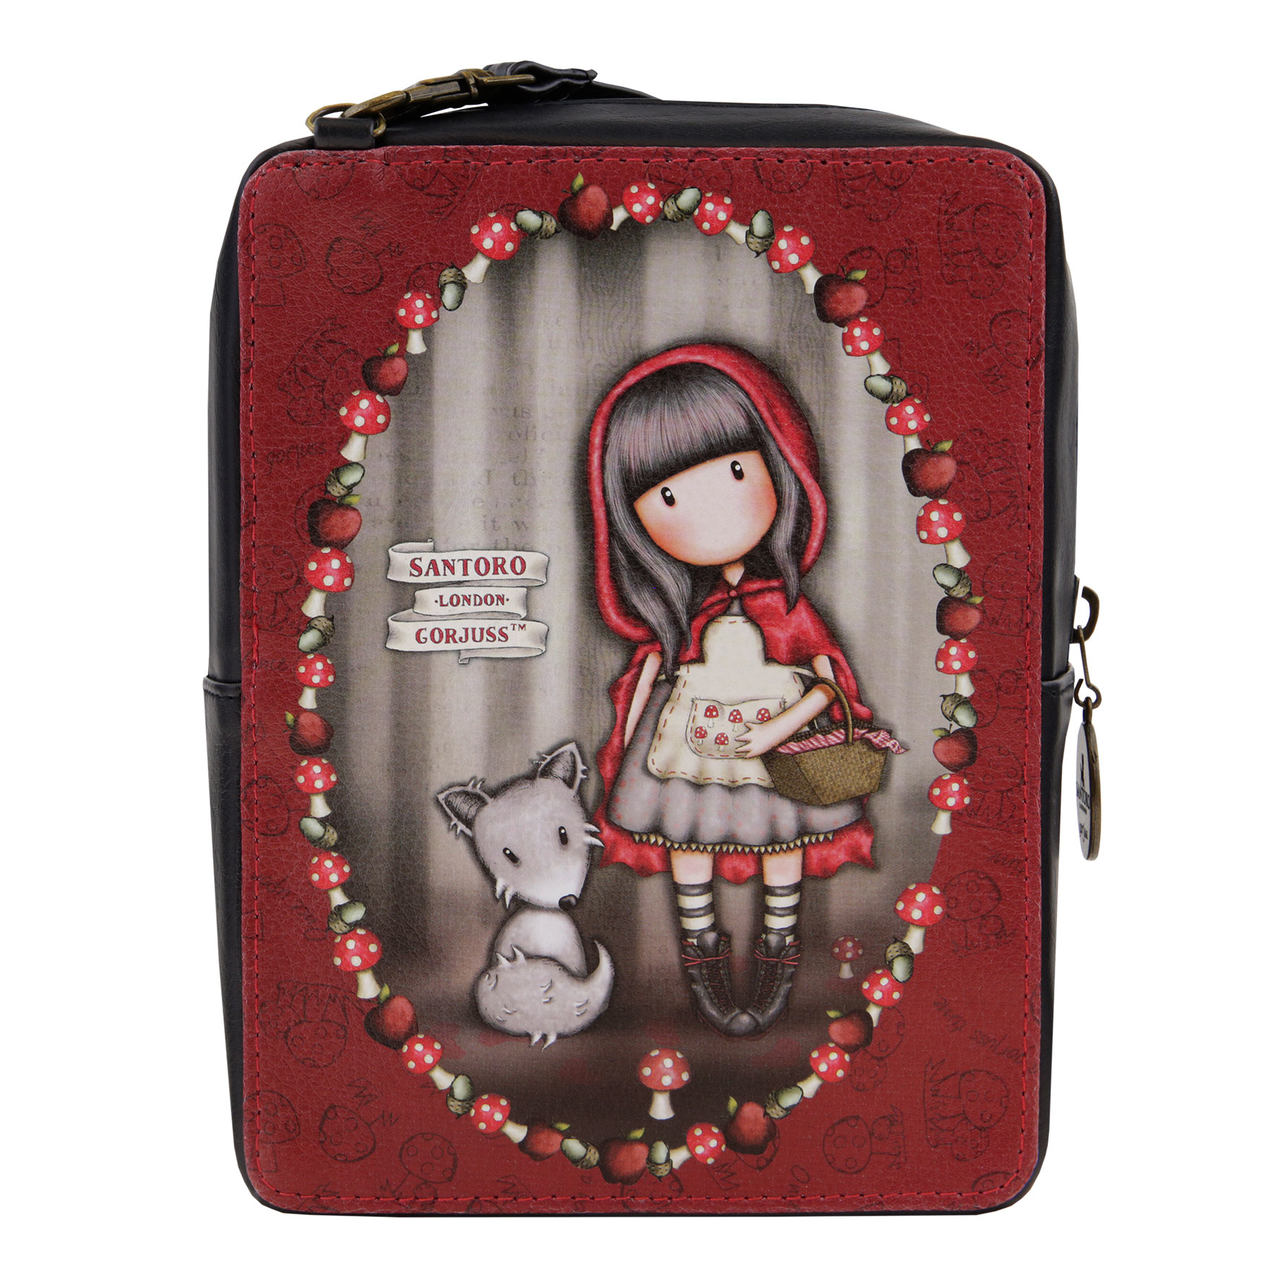 Santoro malá crossbody kabelka Gorjuss Little Red Riding Hood